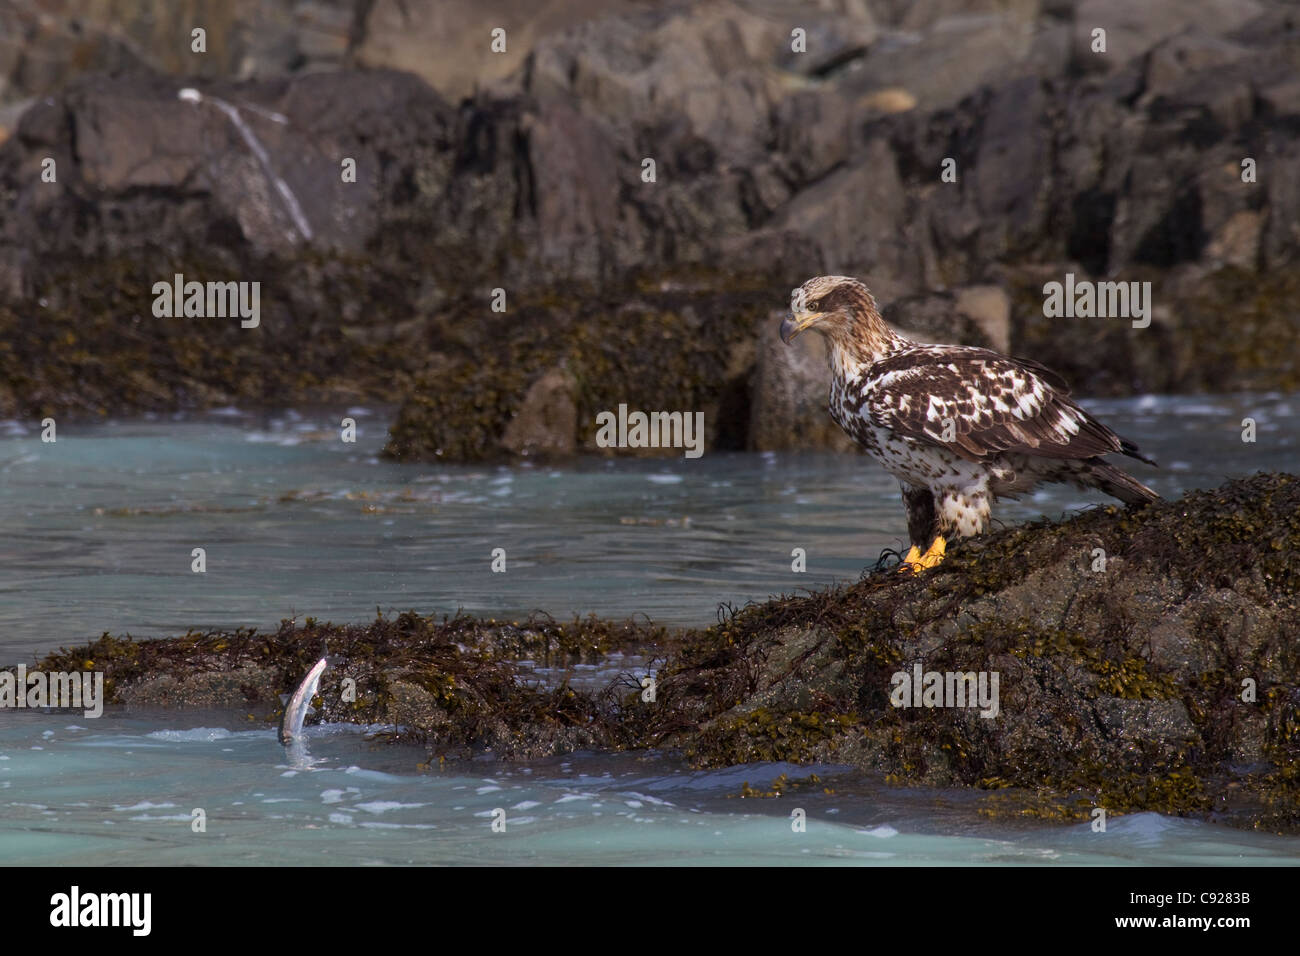 Juvenile Bald Eagle sits on rocky shoreline looking at herring jumping just out of reach during herring spawning - Stock Image